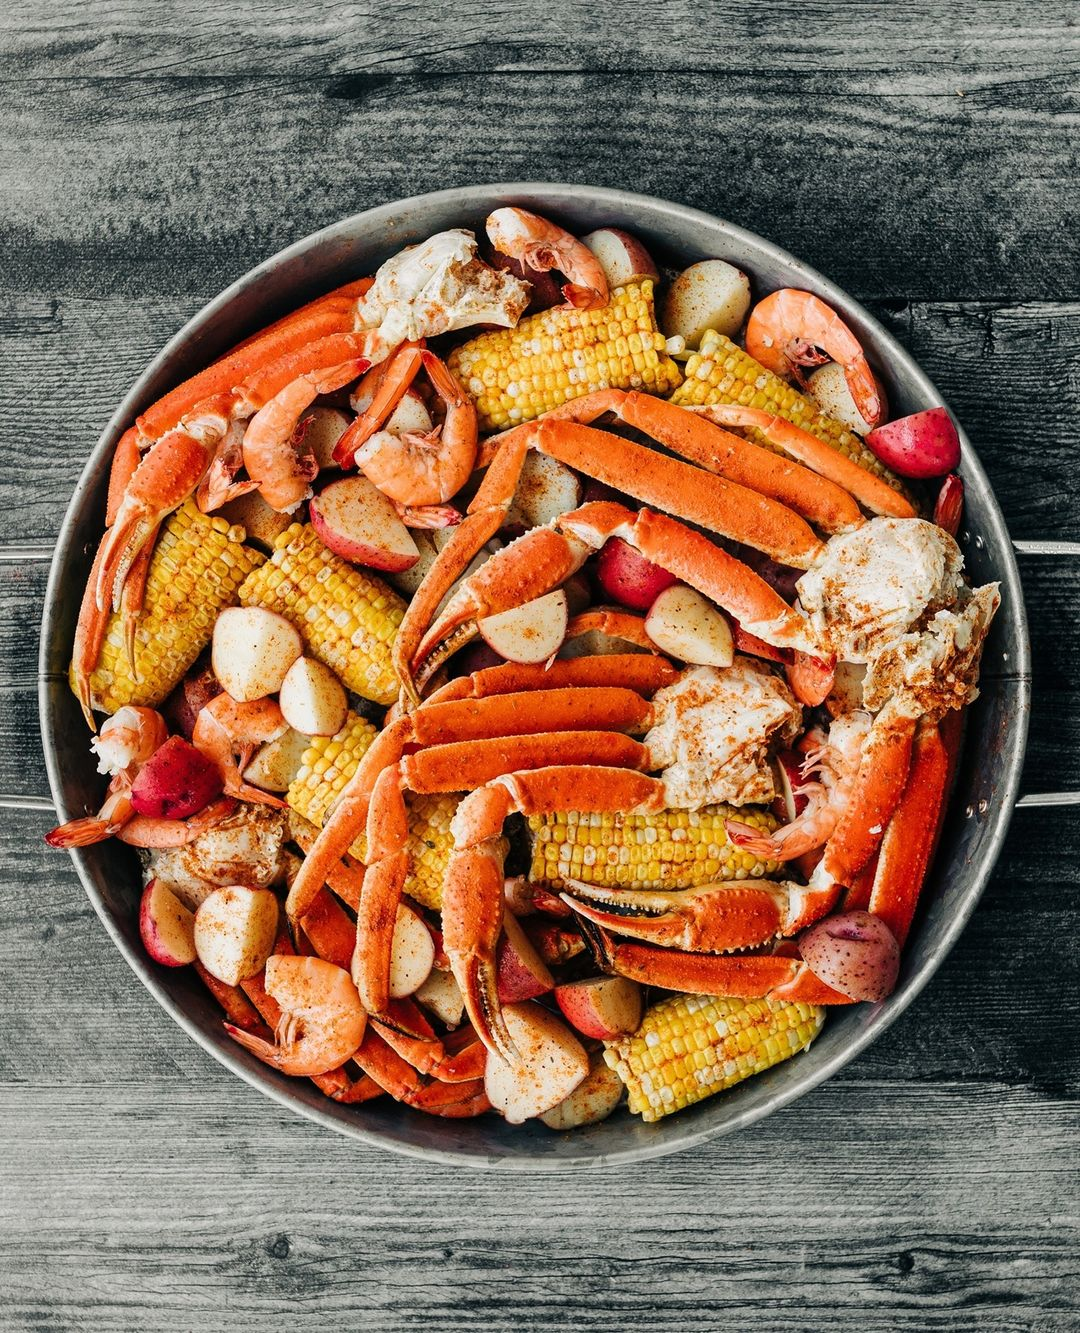 LBI CRAB LEGS ANYONE?? It's finally the weekend! Time to grab the family and sit aro…